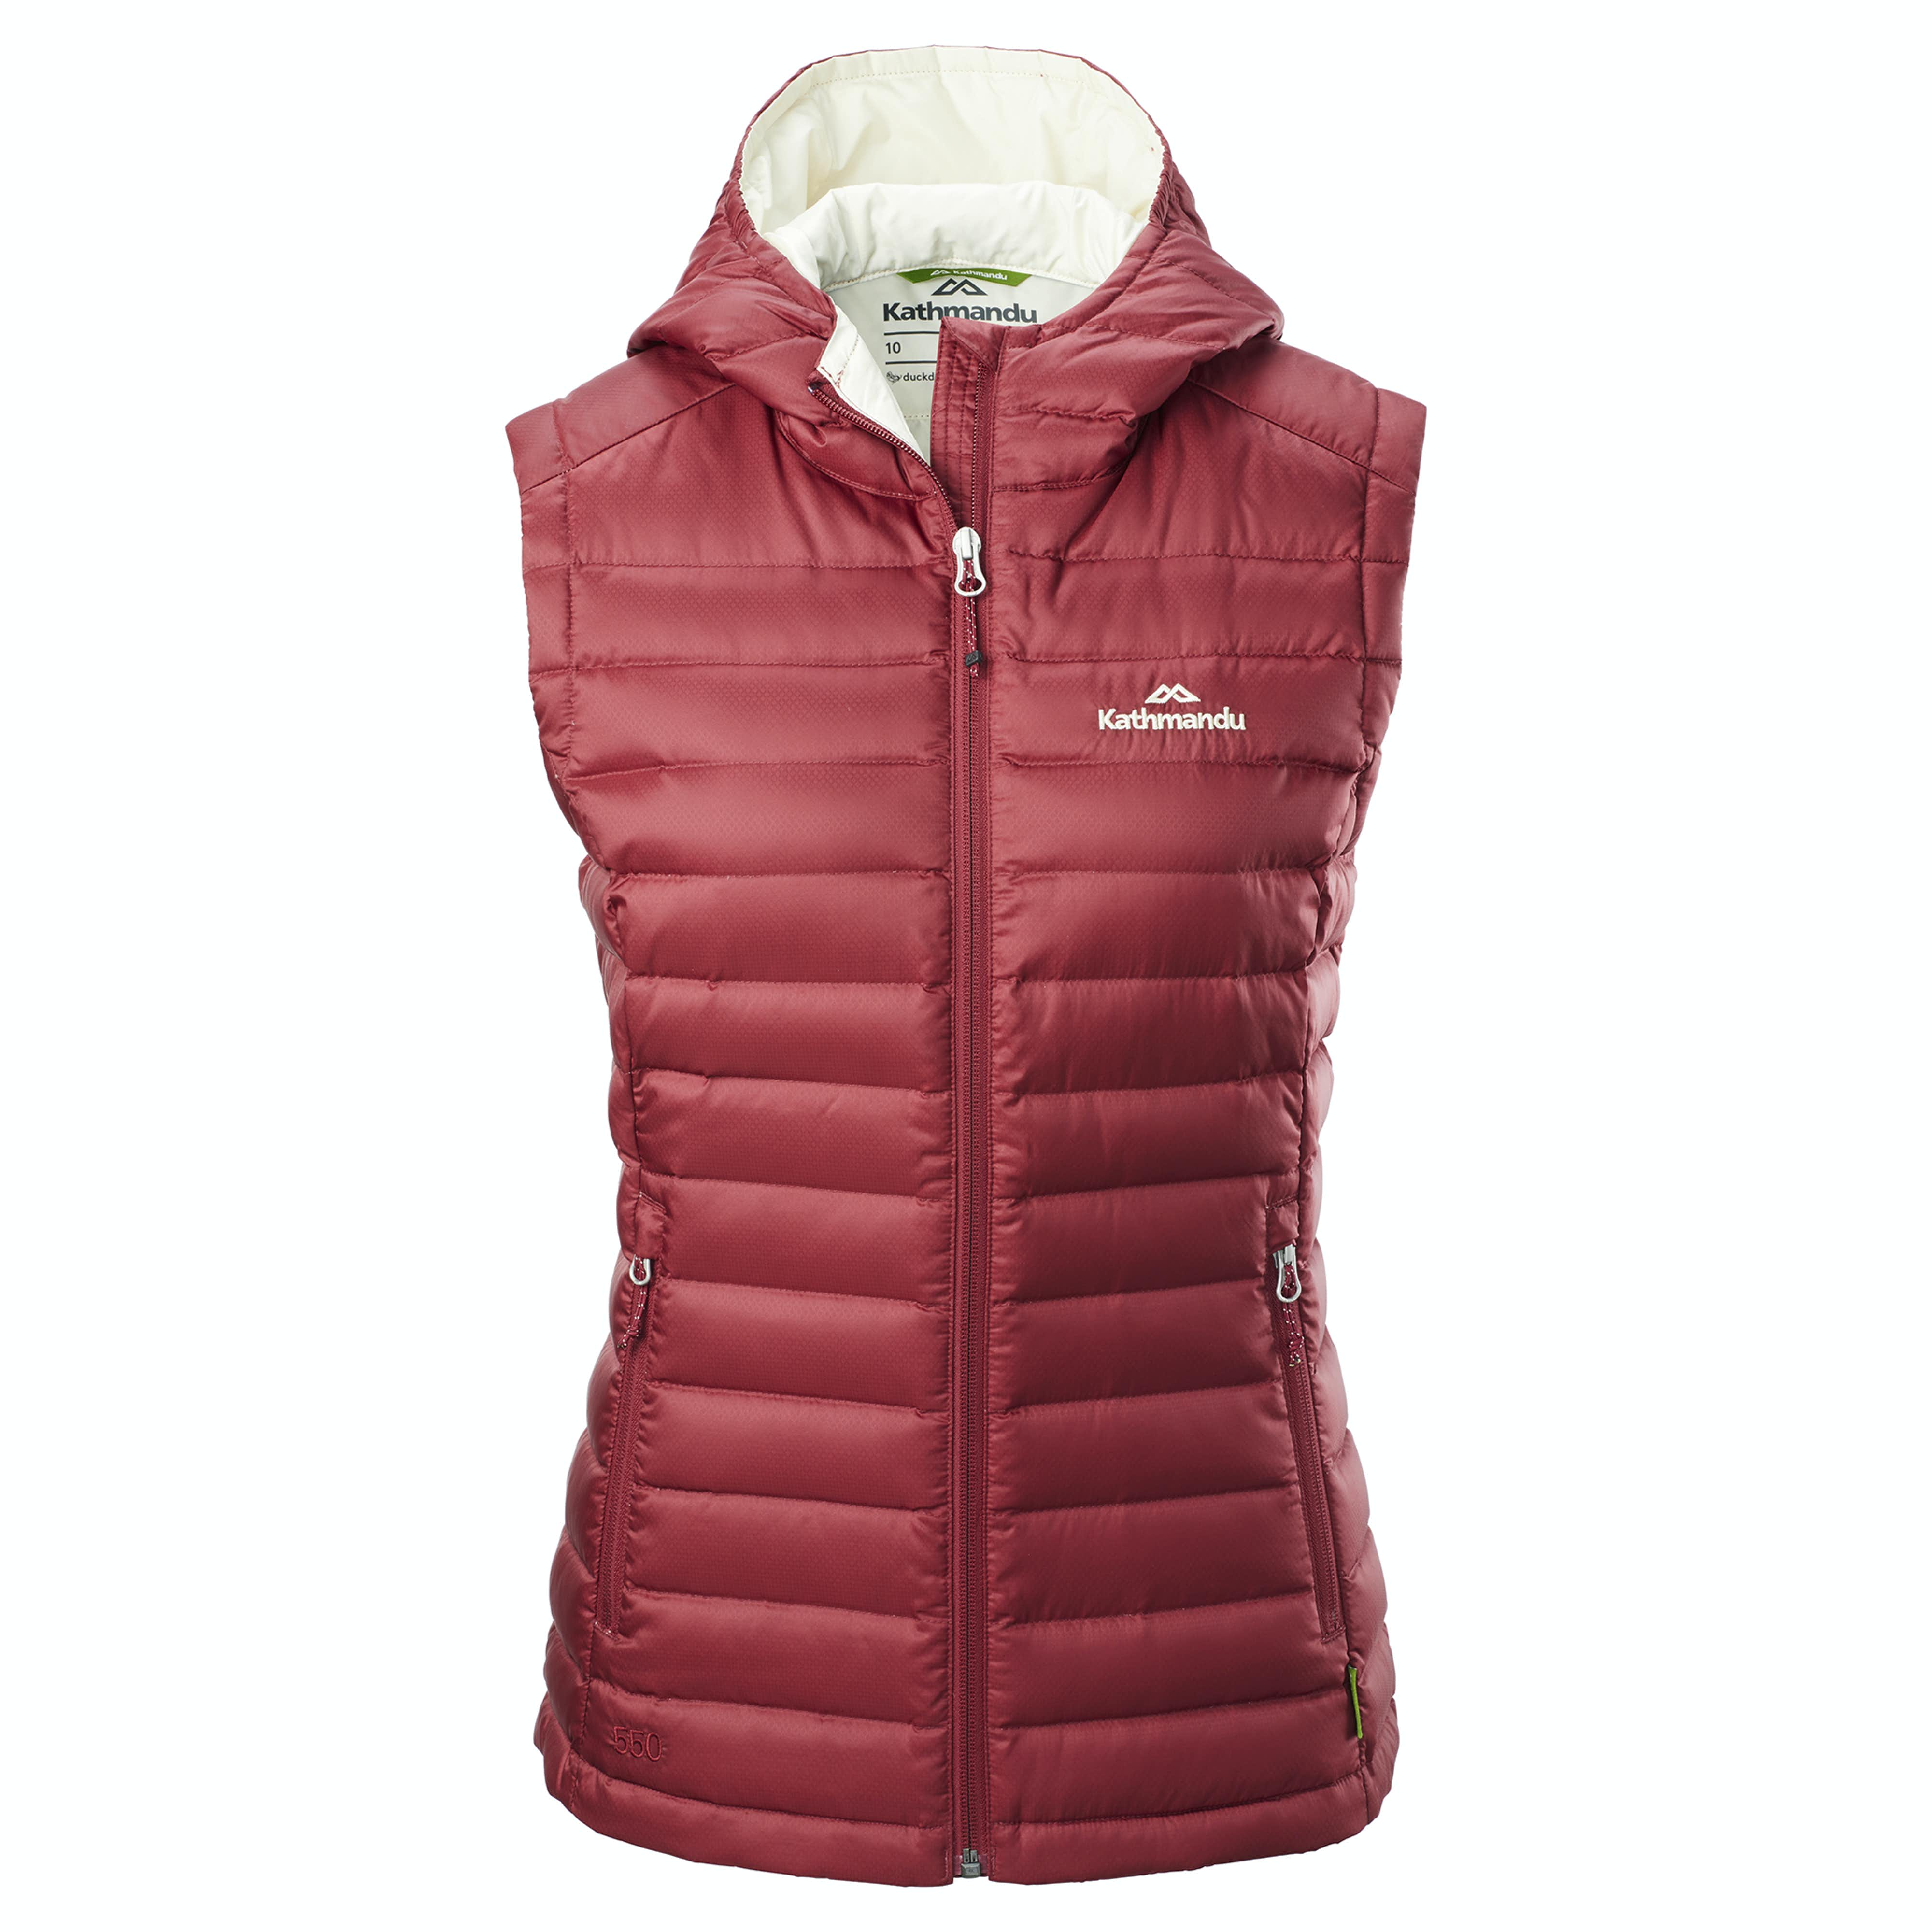 ce8c6277b Womens Jackets & Coats | Winter Coats for Women | Kathmandu AU